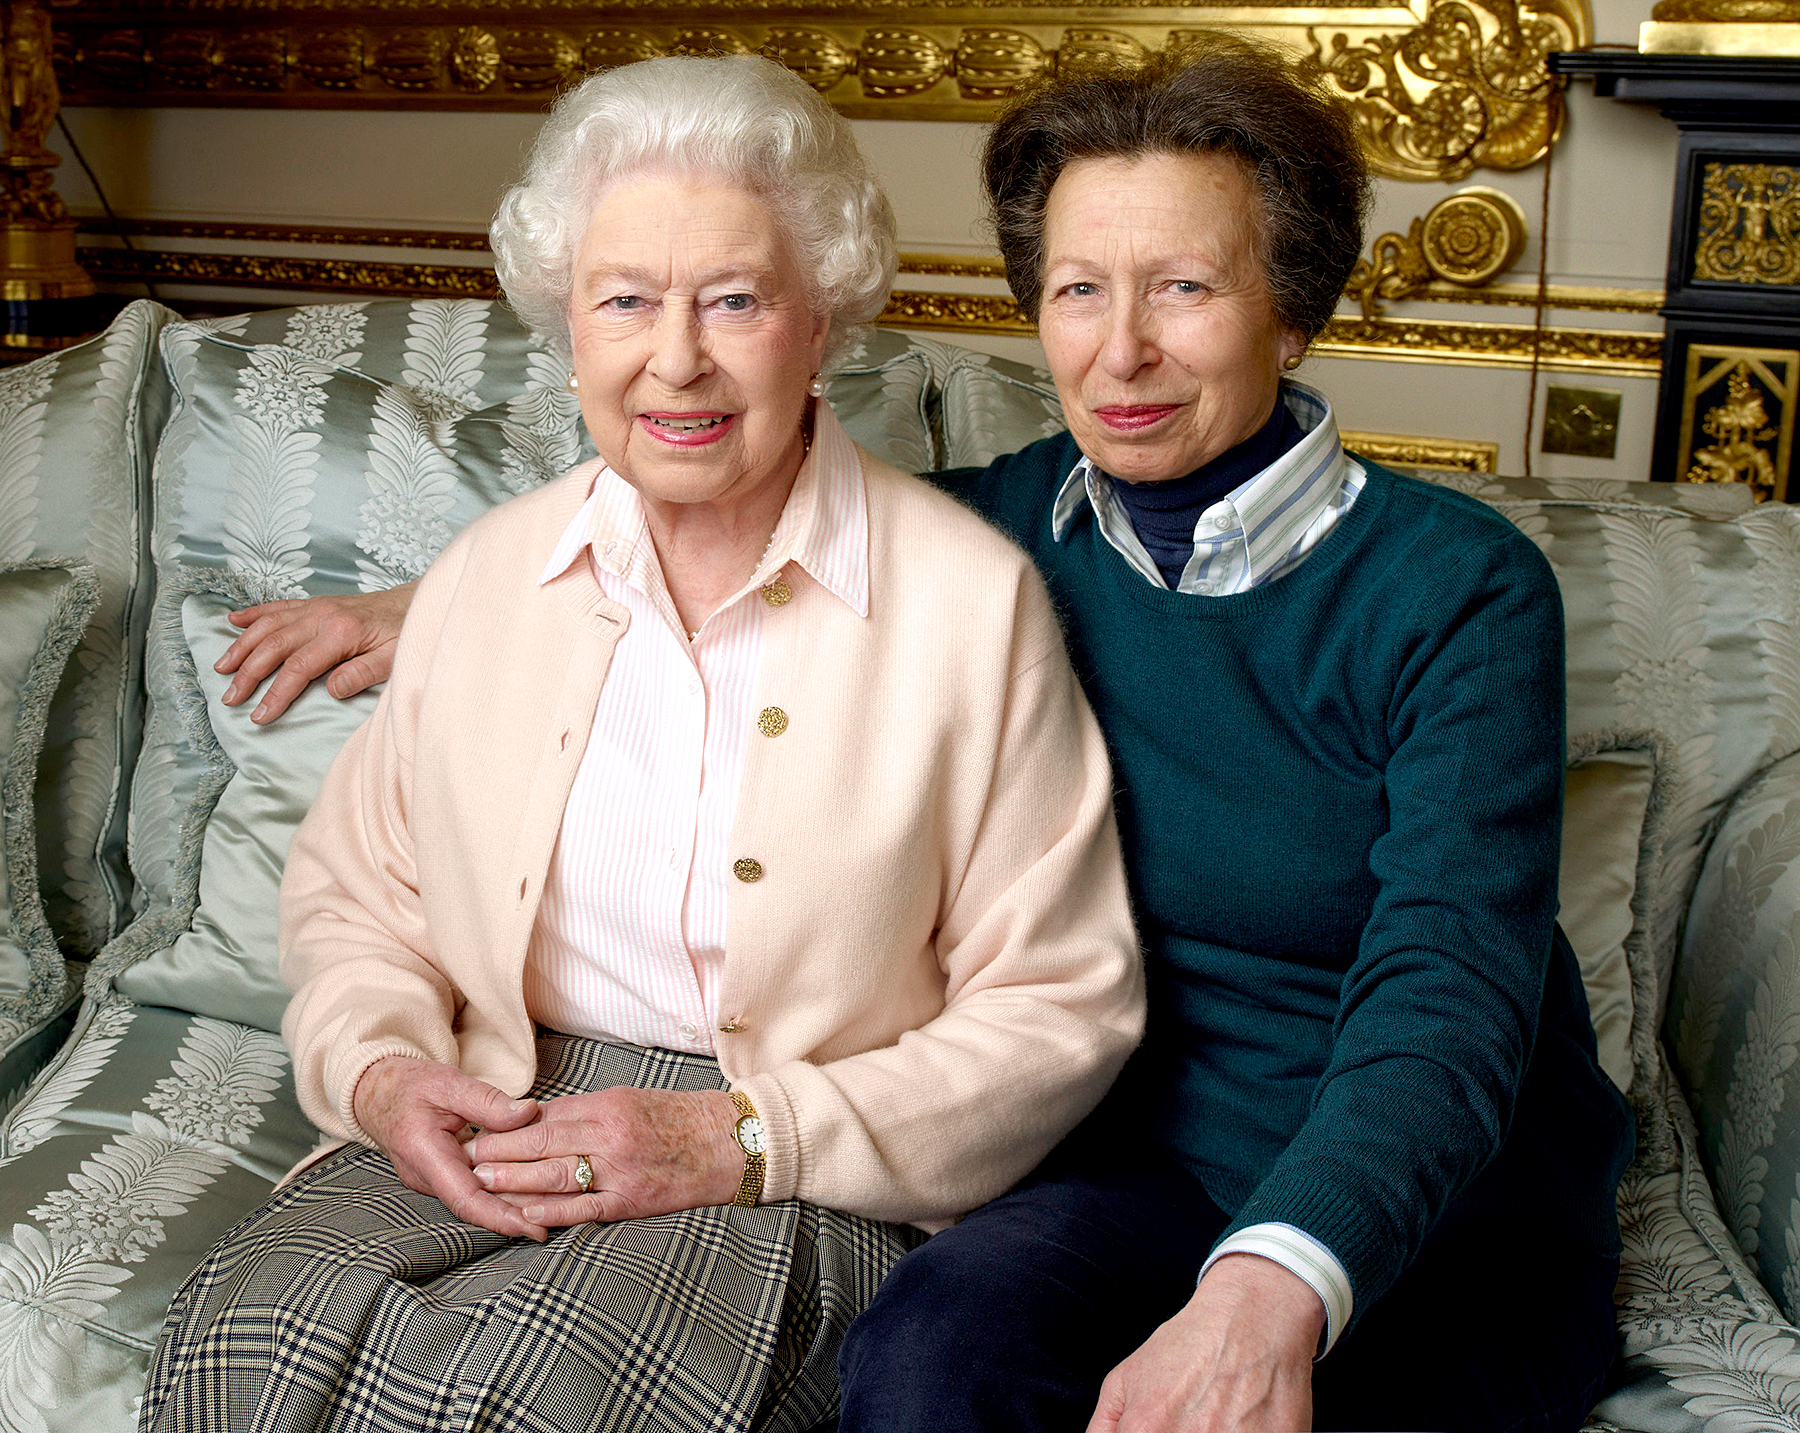 The Queen with her daughter The Princess Royal, taken in the White Drawing Room at Windsor Castle.